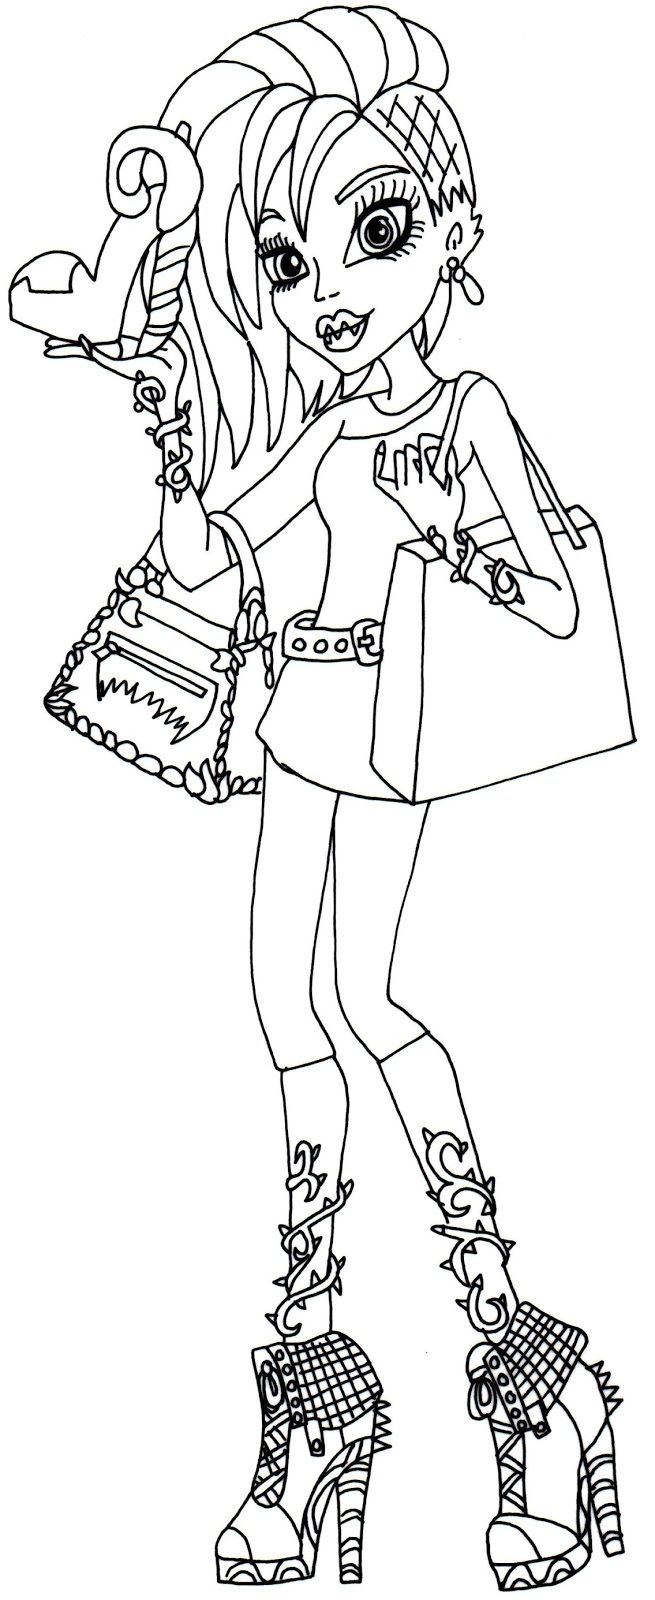 217 best coloring pages images on pinterest monster high draw